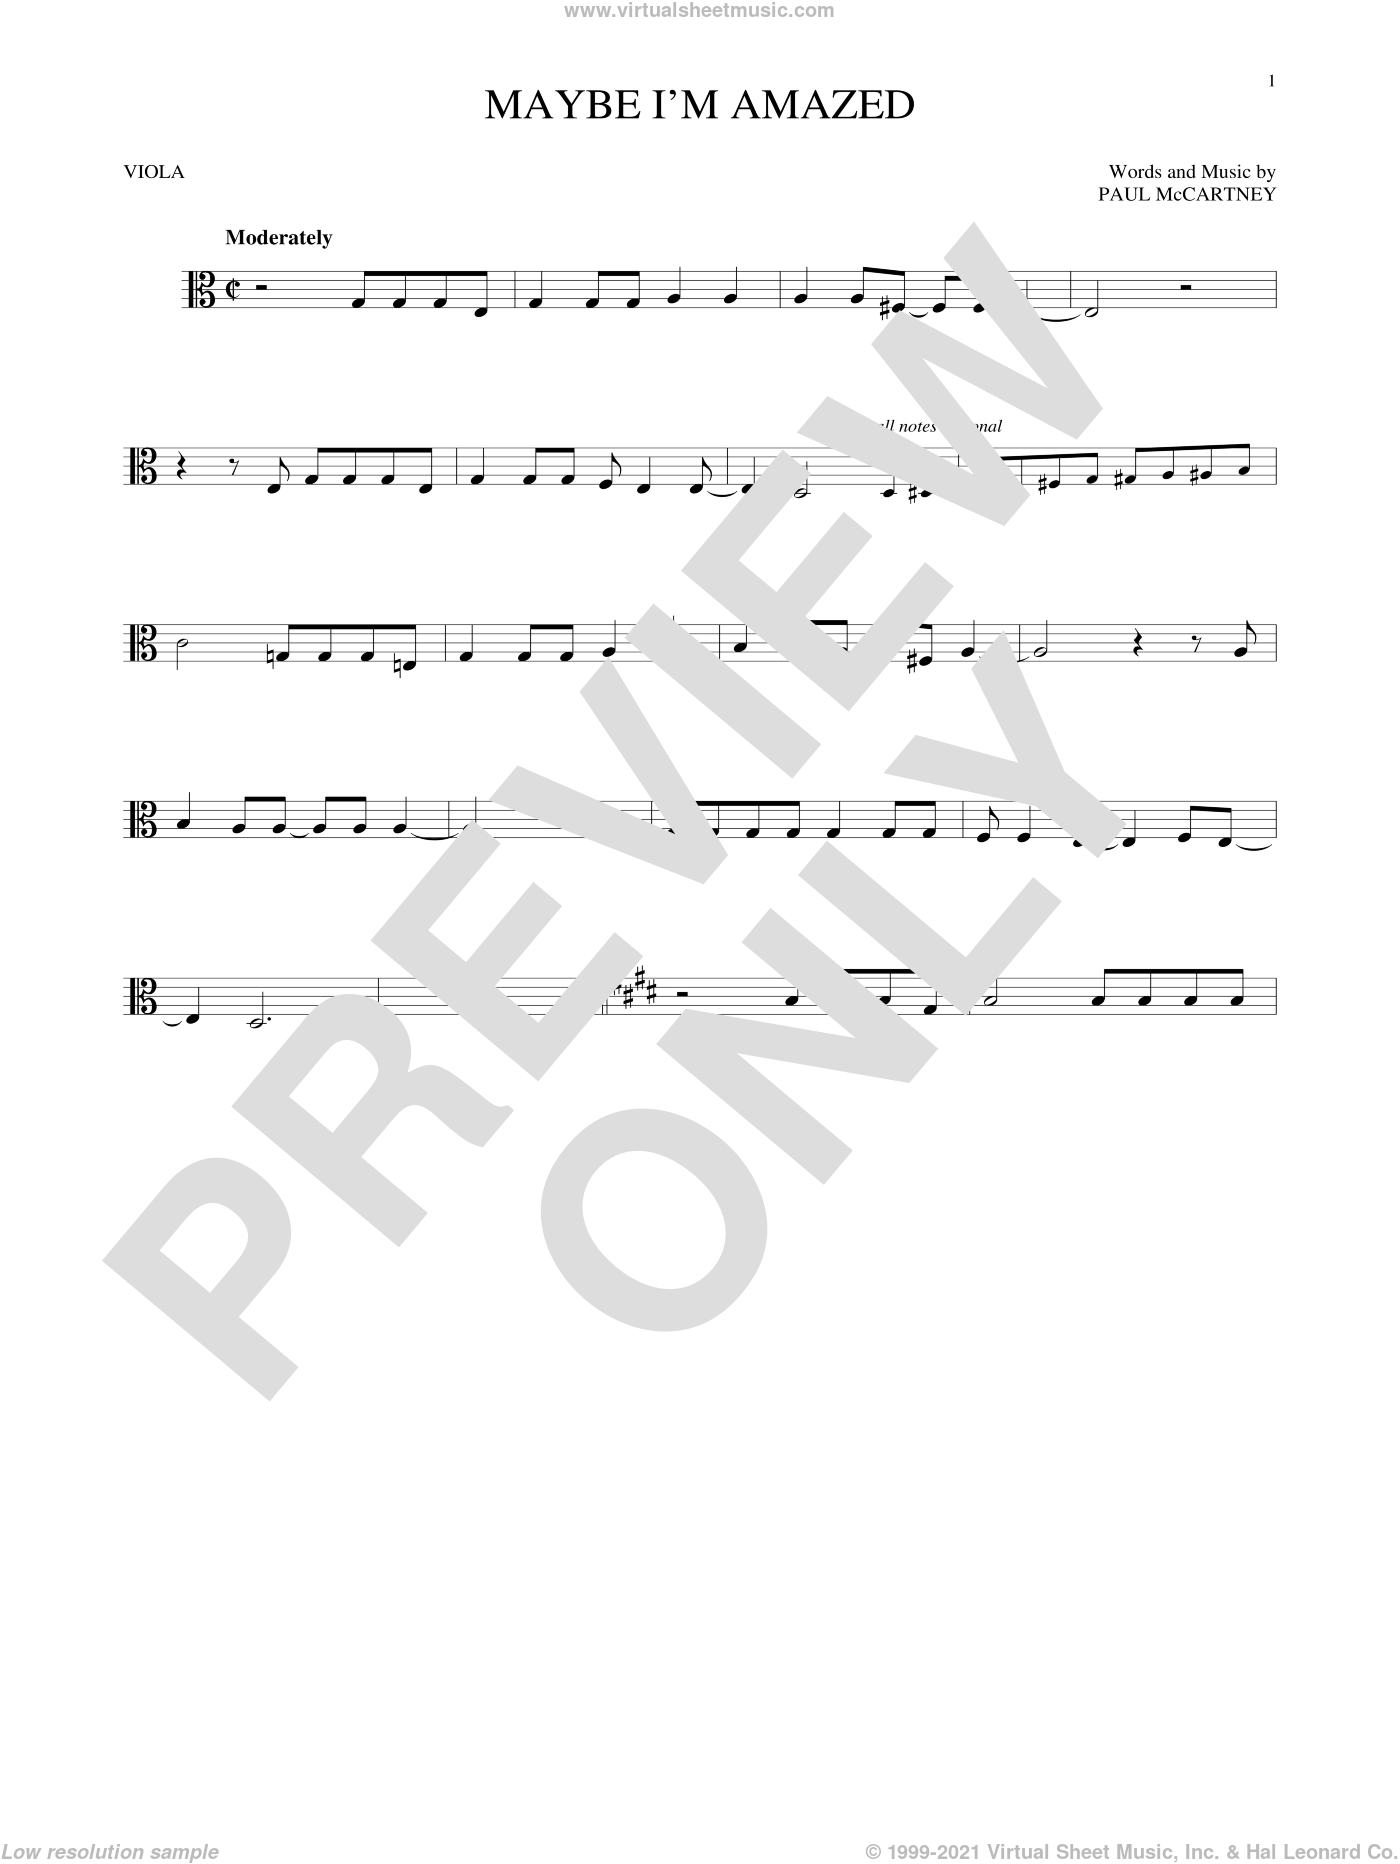 Maybe I'm Amazed sheet music for viola solo by Paul McCartney, intermediate skill level